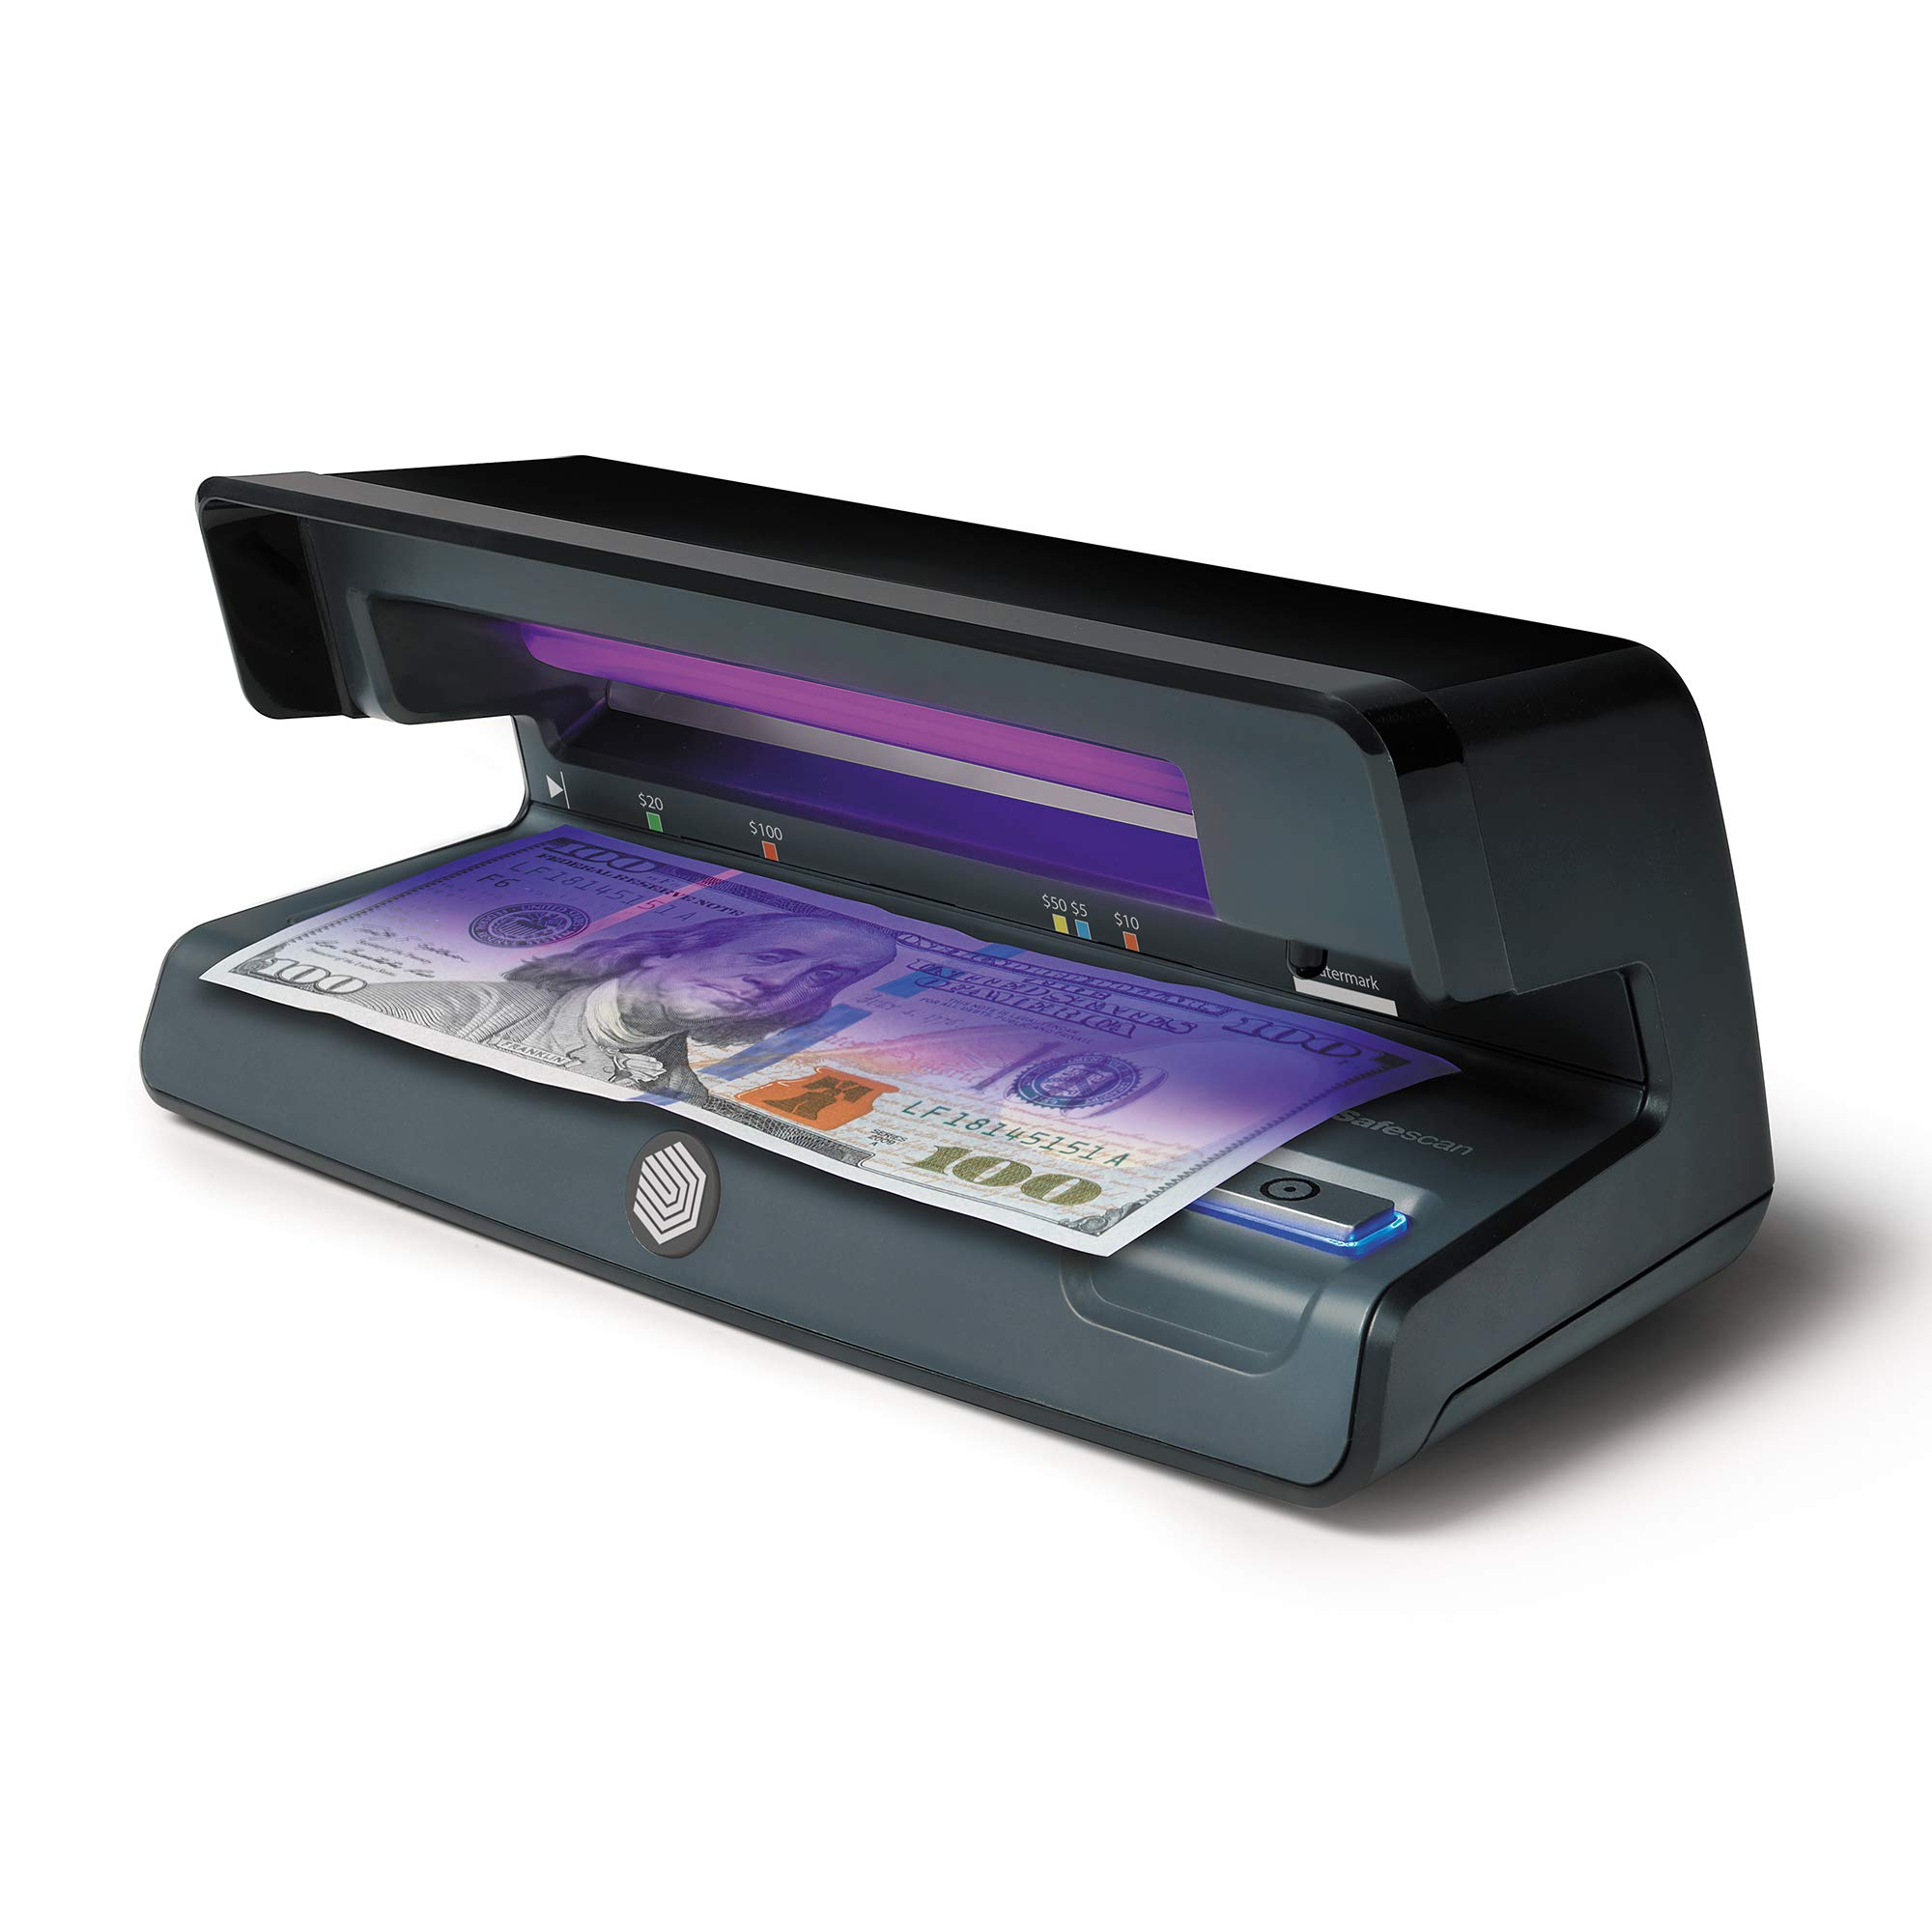 Safescan 70 - UV Counterfeit Bill Detector with Watermark and microprint Detection for Bills, Credit Cards and ID's by Safescan